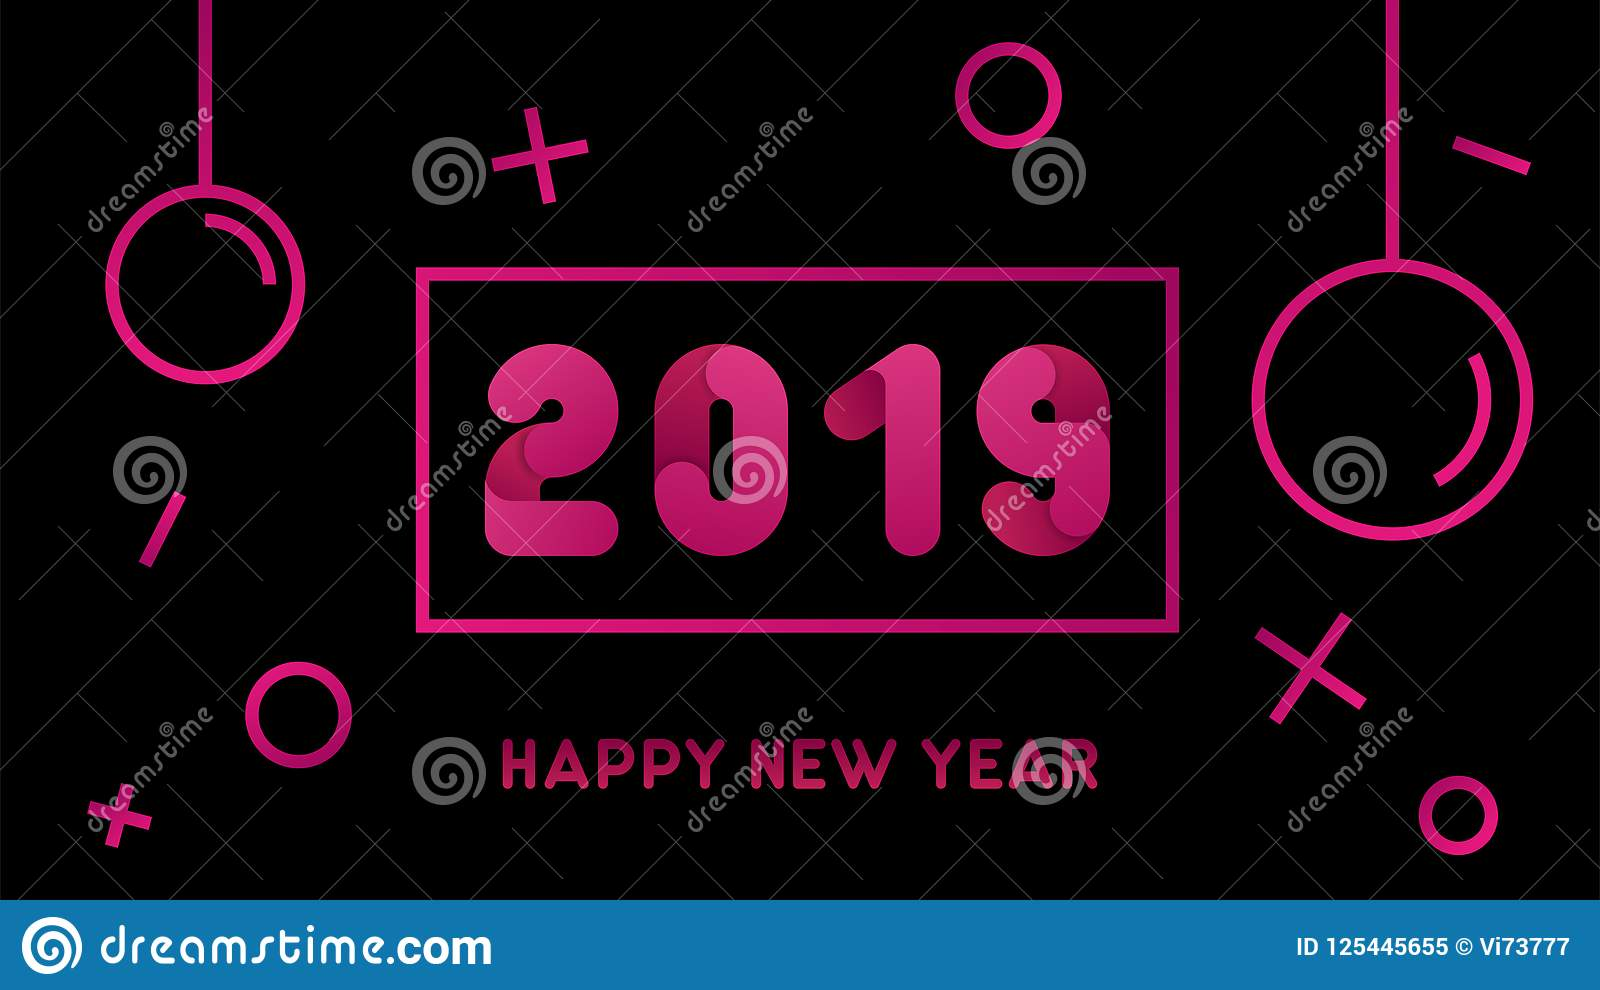 Christmas In Memphis 2019 Modern 2019 Happy New Year Background With Christmas Ball. Vector